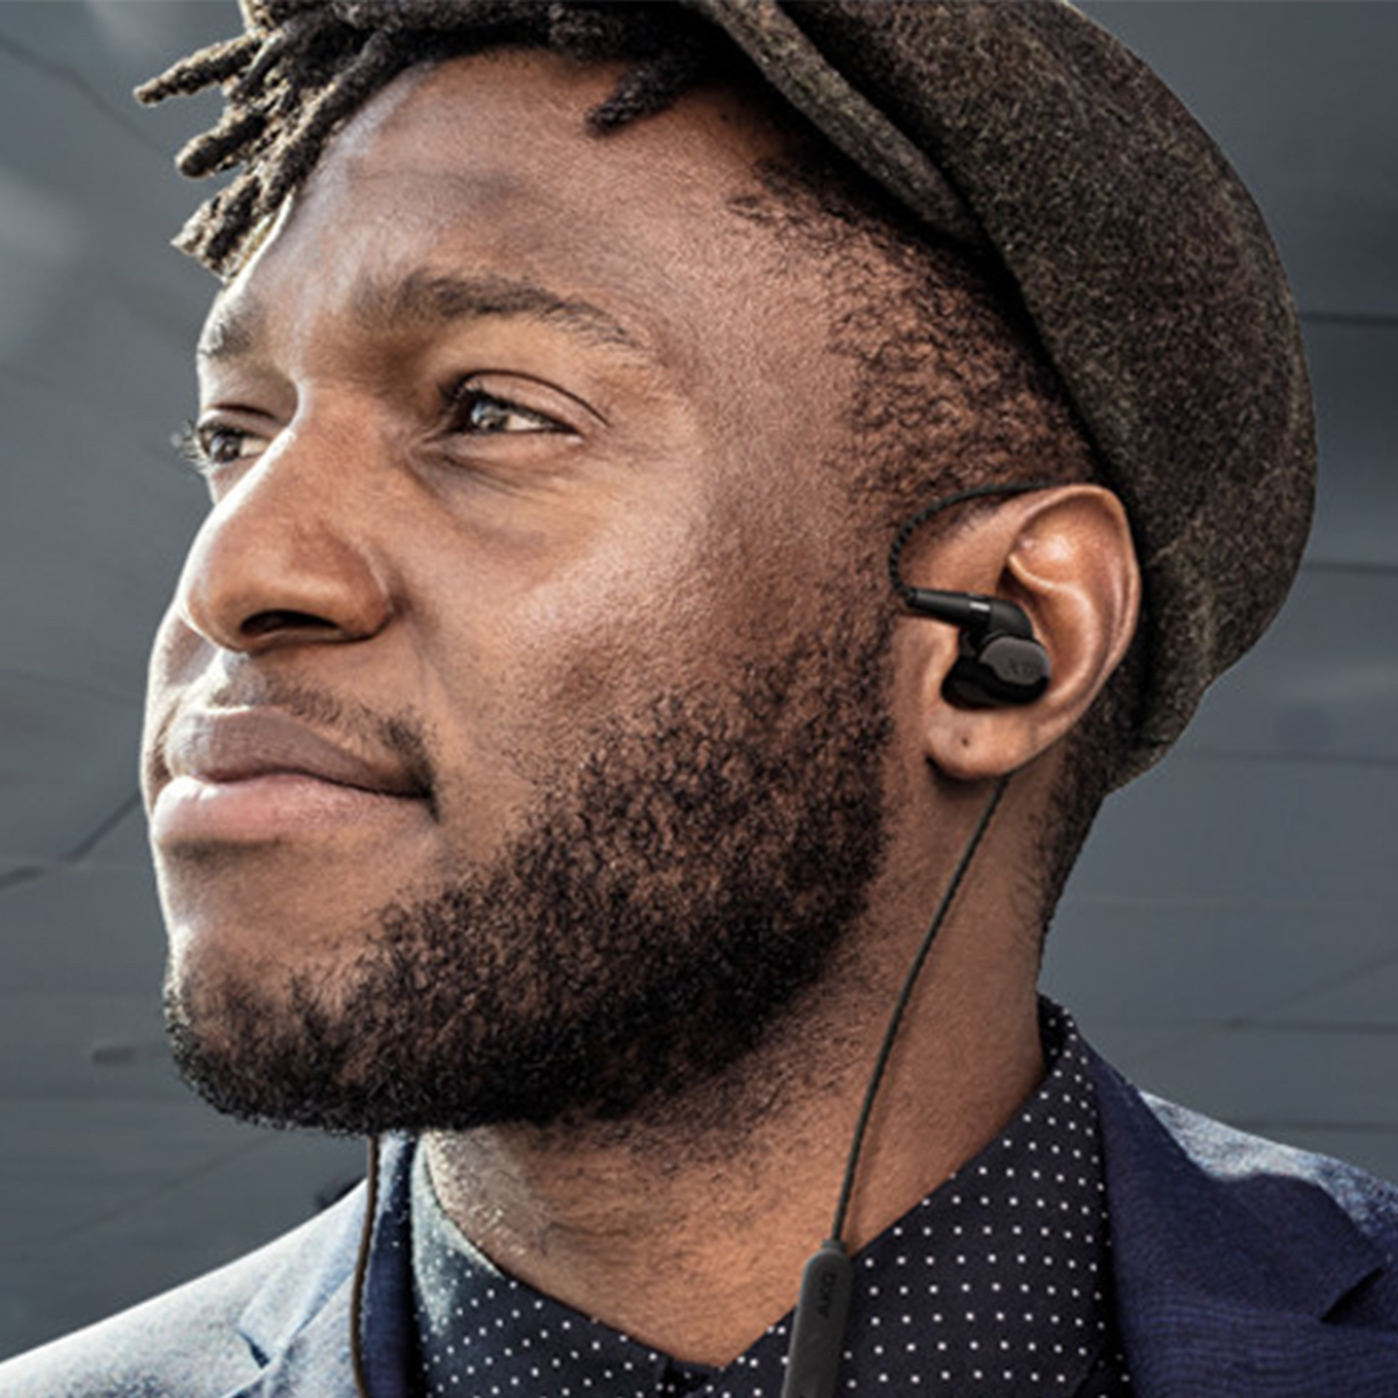 "<font color=""f1c40f"">Wireless Headphones</font>"